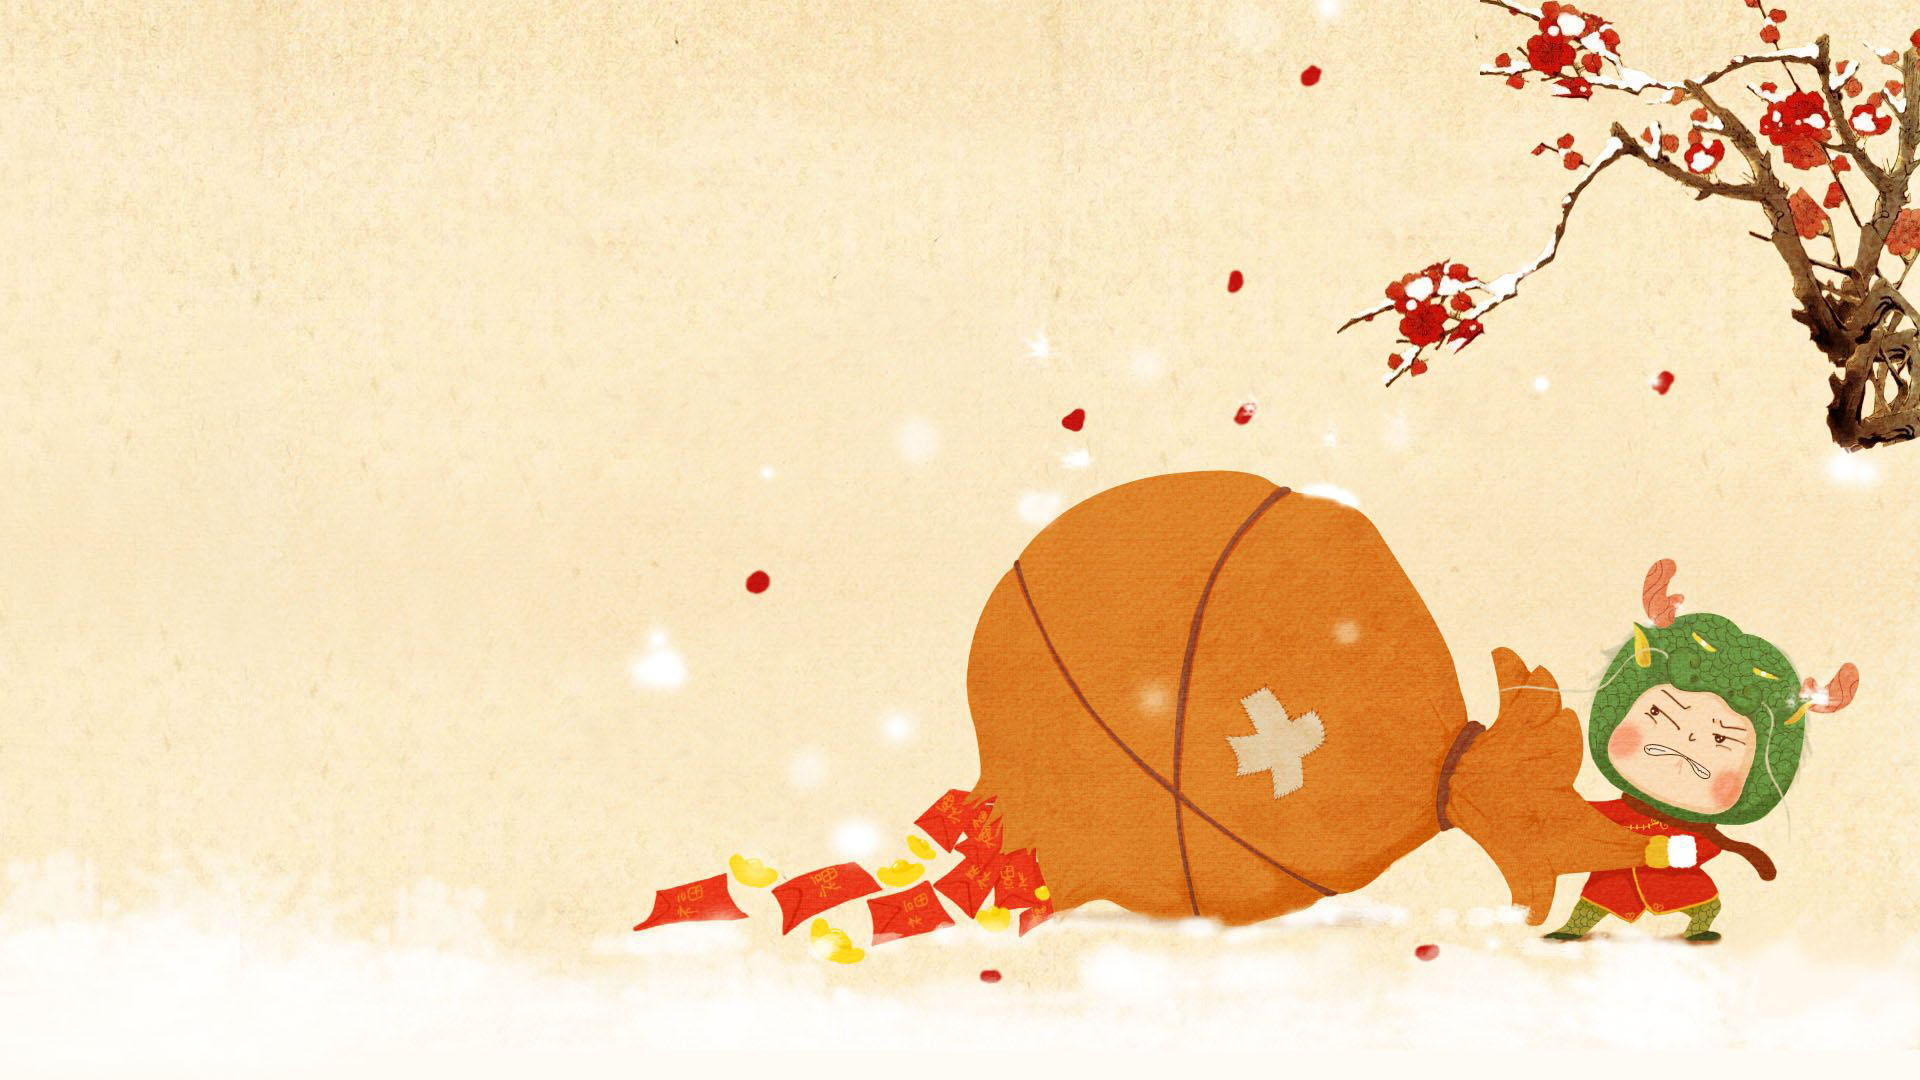 Chinese New Year Wallpapers HD Download 1920x1080